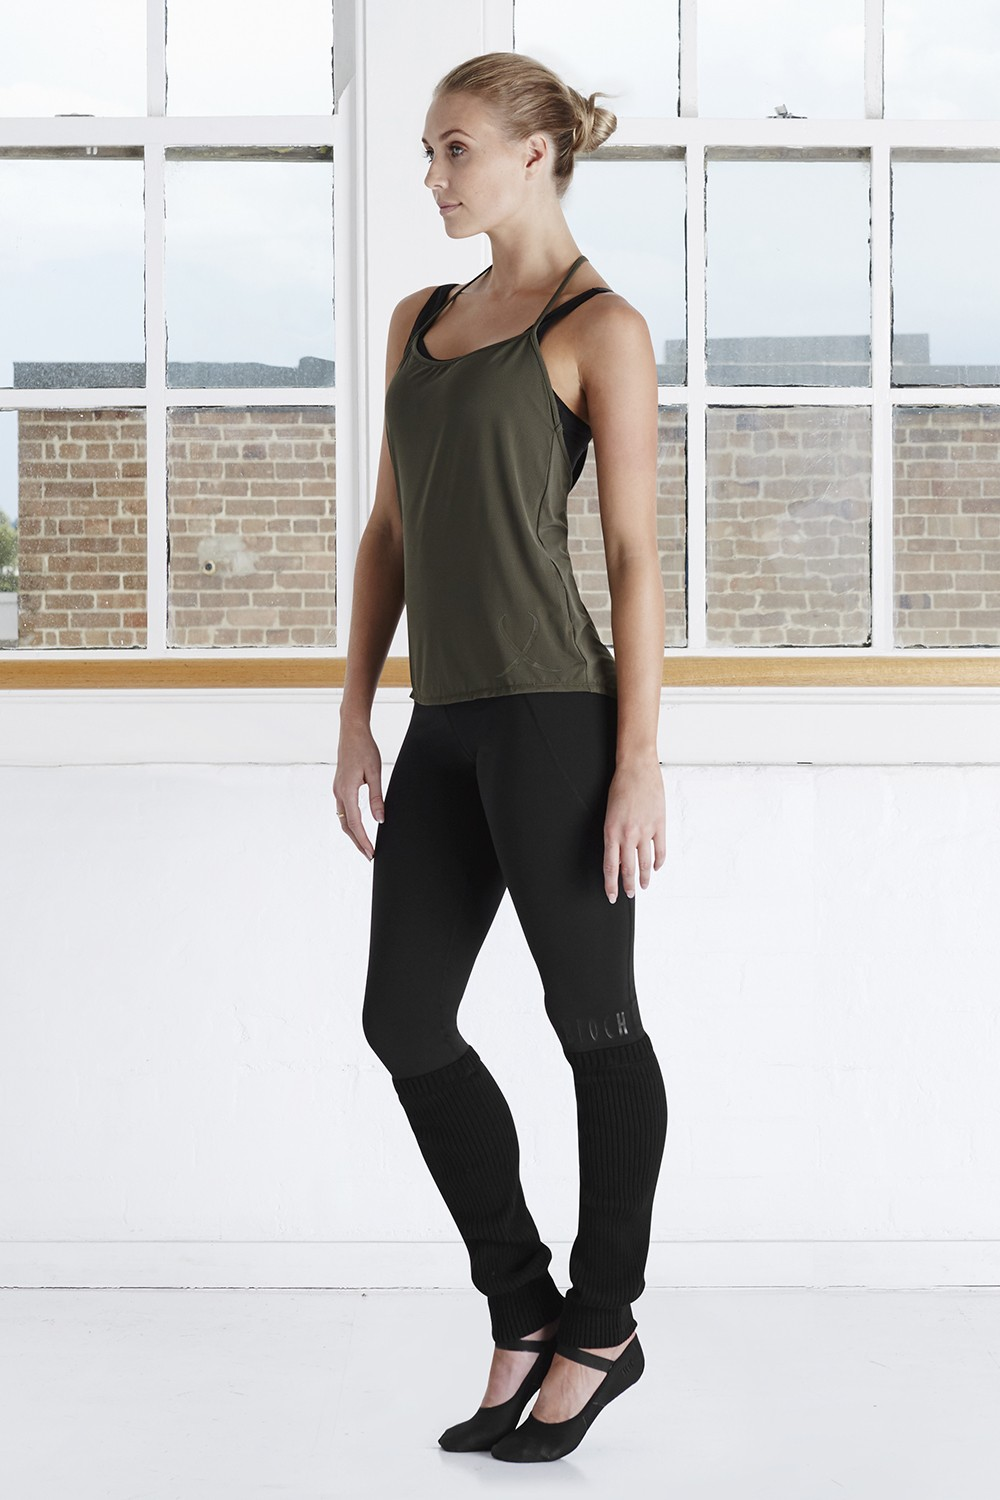 T Back Branded Singlet Top Women's Dance Tops